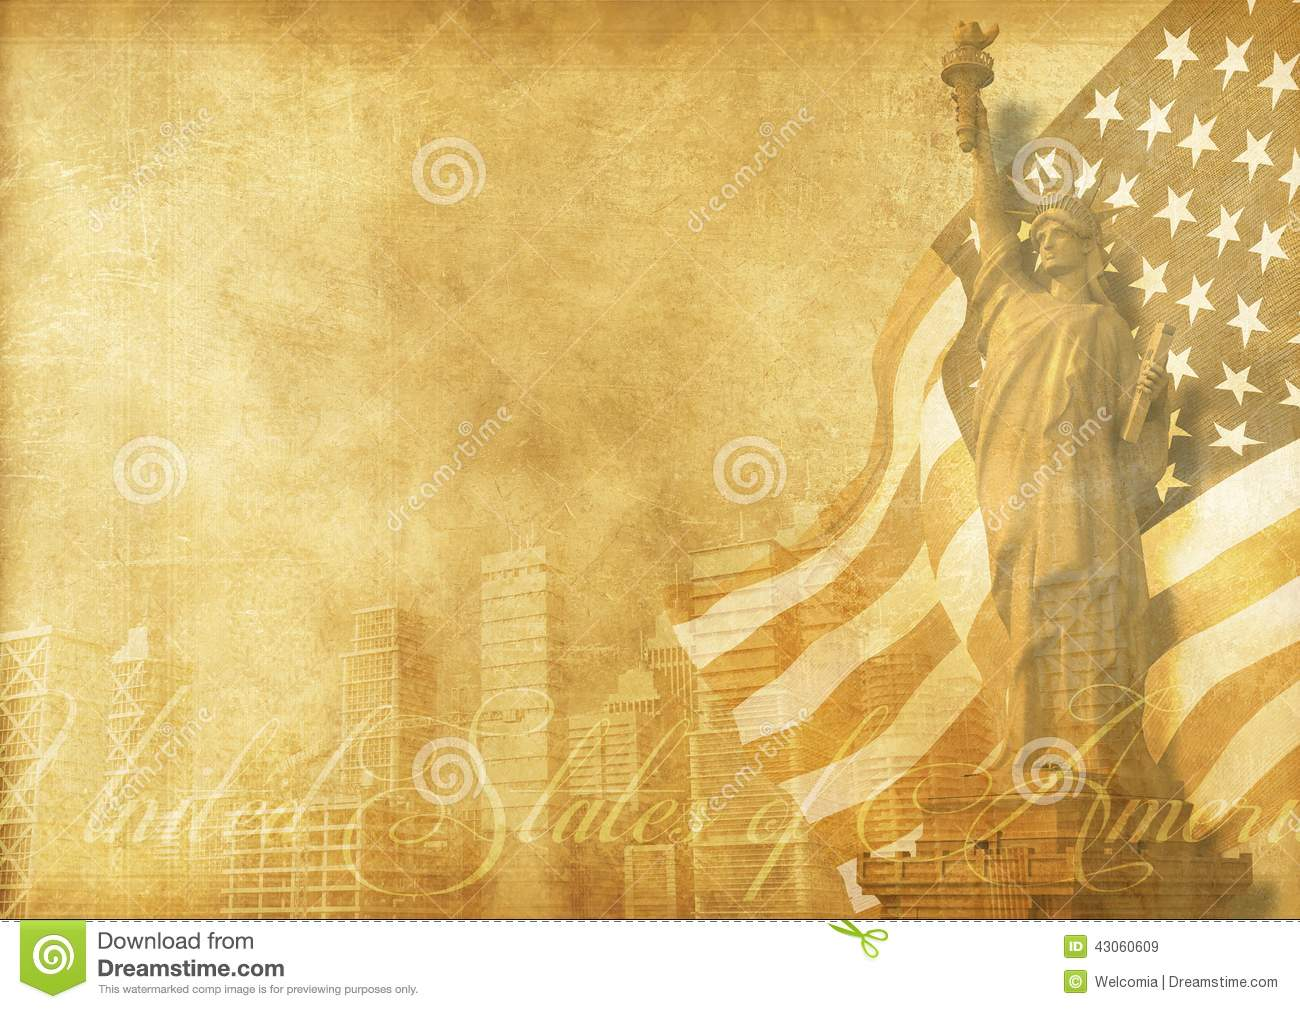 ... , American Flag and American City Skyline. Vintage Old Paper Design